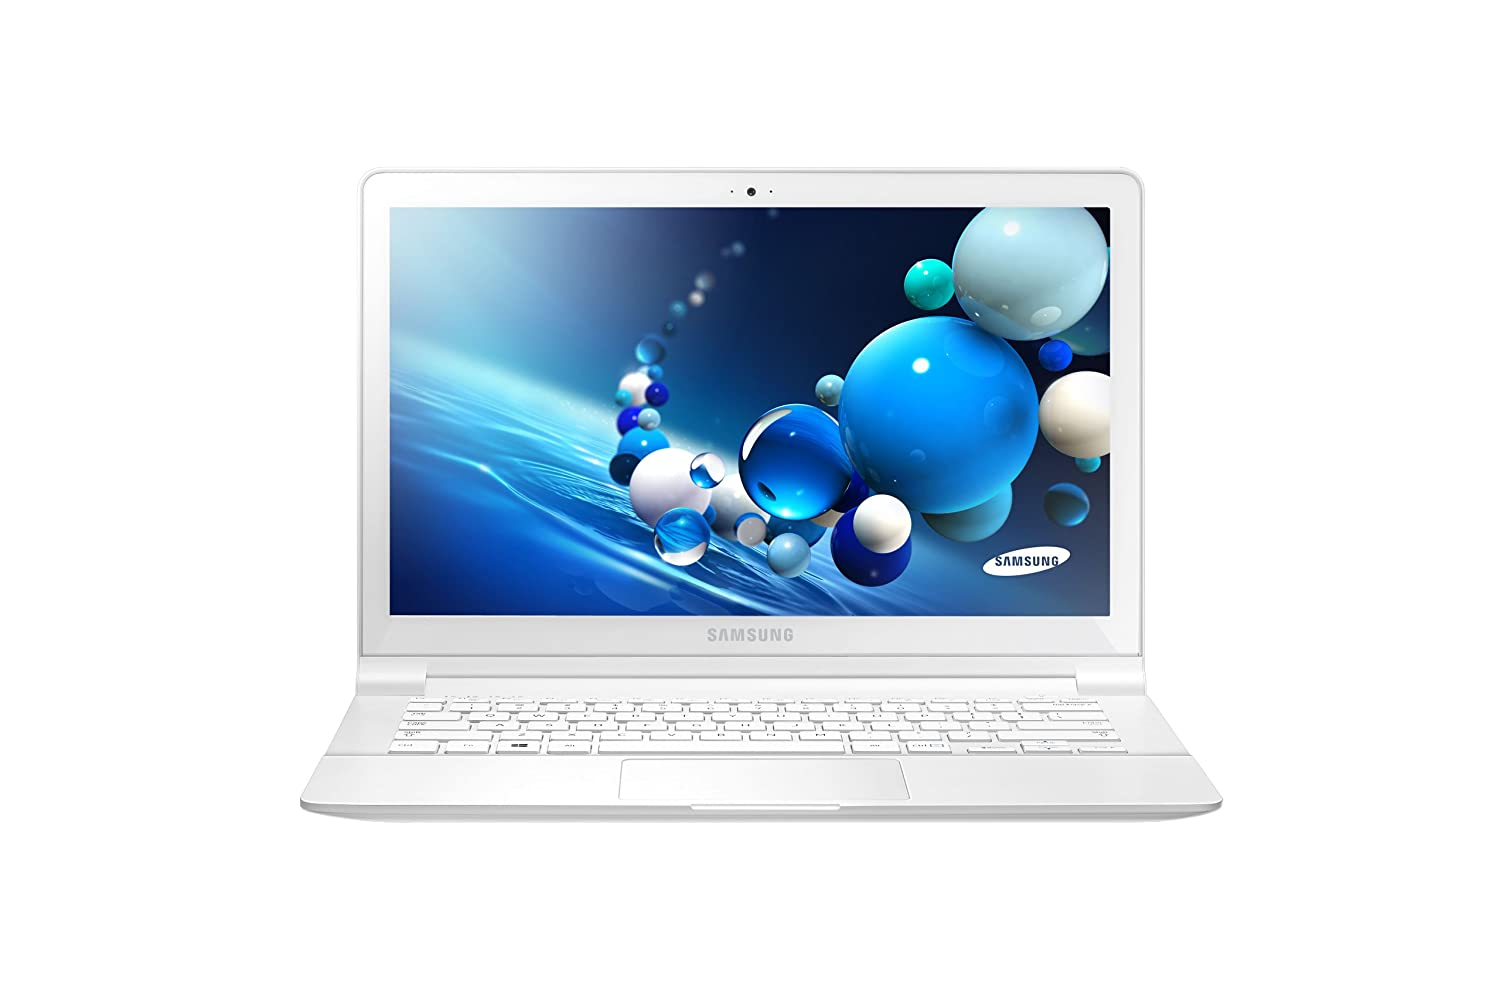 Ordinateur Portable SAMSUNG ATIVBOOK9 905S3GK01 BLANC AMD A6 3400M 1.4GHZ 4GO 128GO WIN8